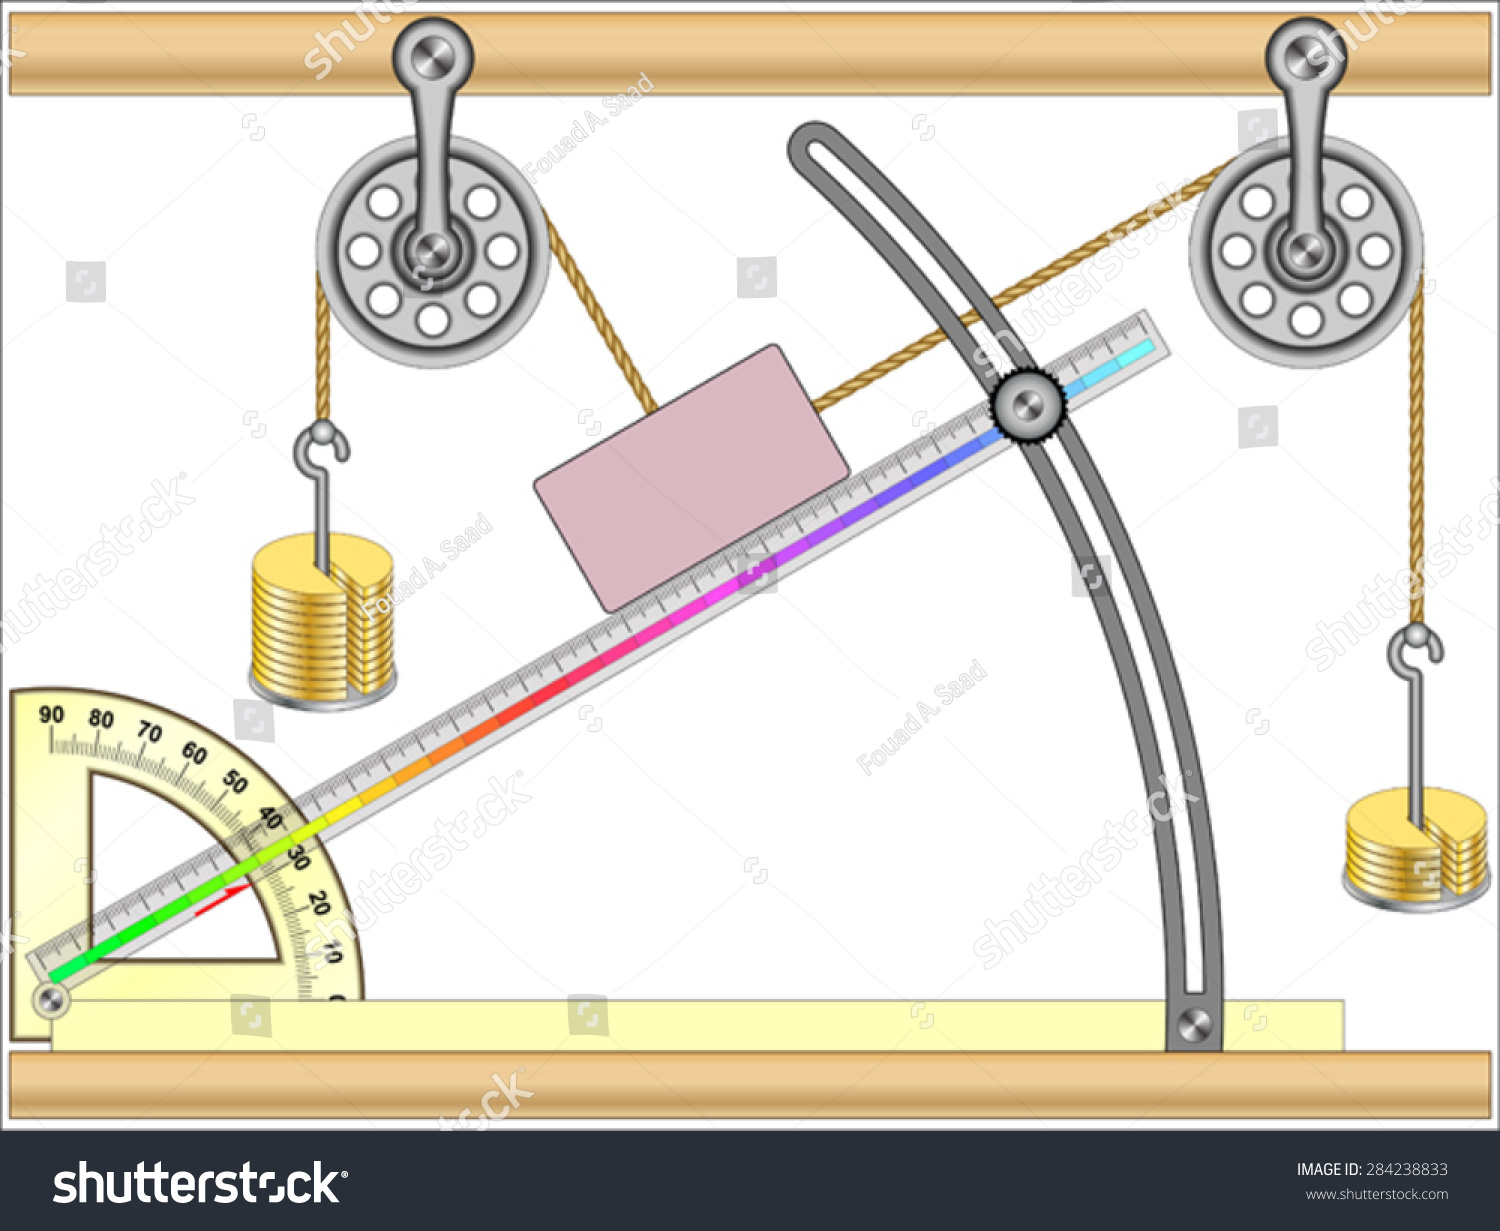 Resolution Of Forces And Inclined Planes Stock Vector